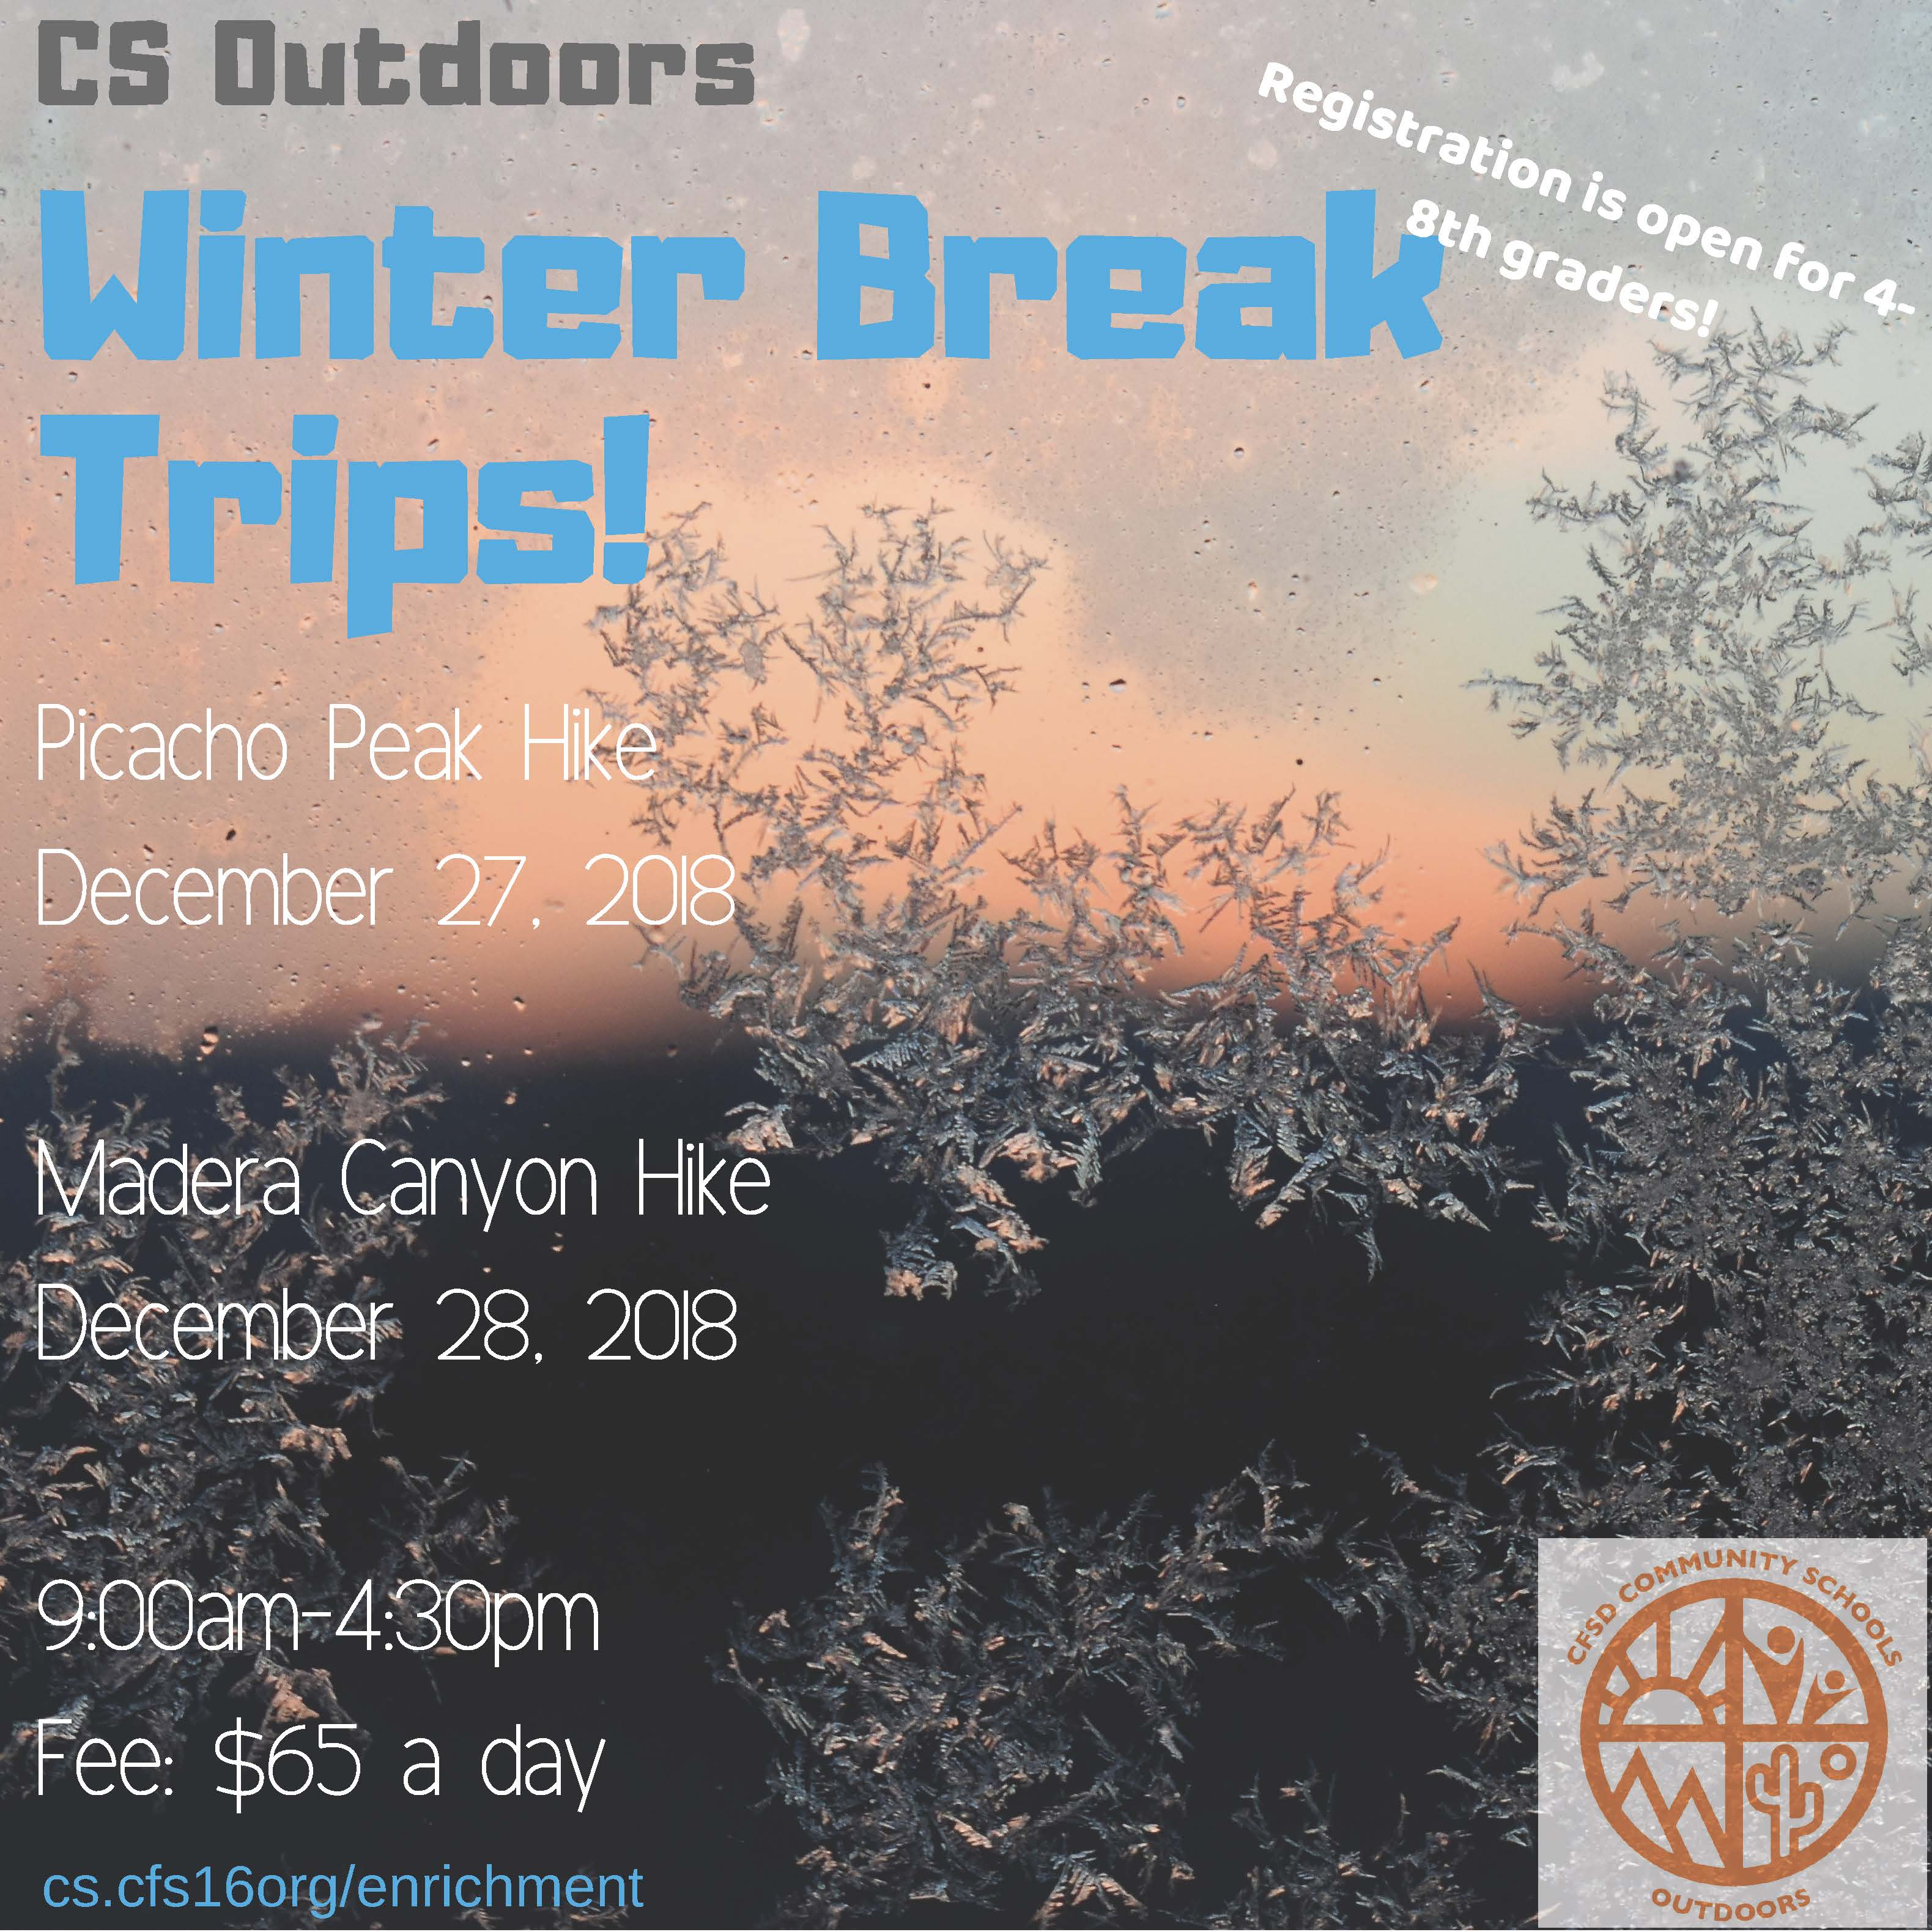 CS Outdoors Winter Break Trips.  Picacho Peak hike, December 27, 2018.  Madera Canyon hike, December 28, 2018.  From 9:00am to 4:30pm.  Fee is $65 each day.  Registration is open to all 4th - 8th graders.  Register at cs.cfsd16.org/enrichment.